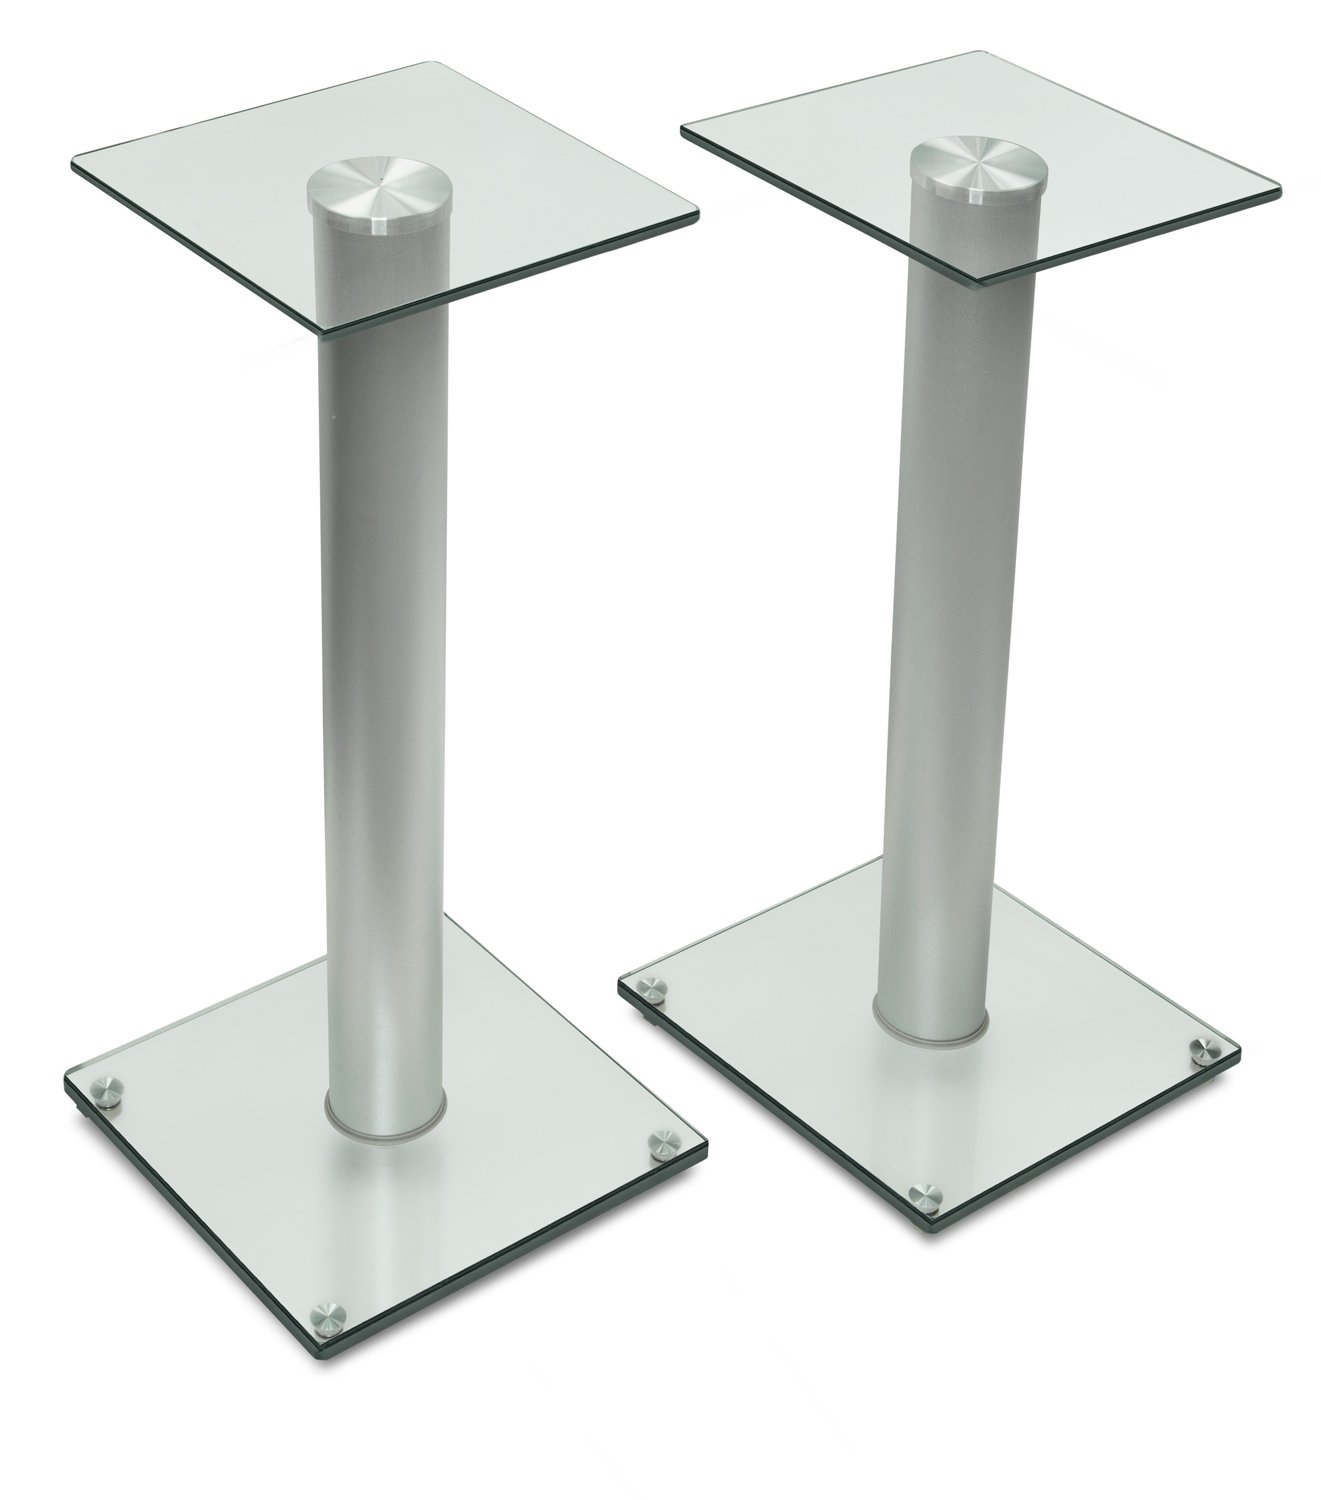 Mount-It! Speaker Stands for Satellite Speakers and Surround Sound Systems, Glass and Aluminum, Silver (MI-58SLVR)